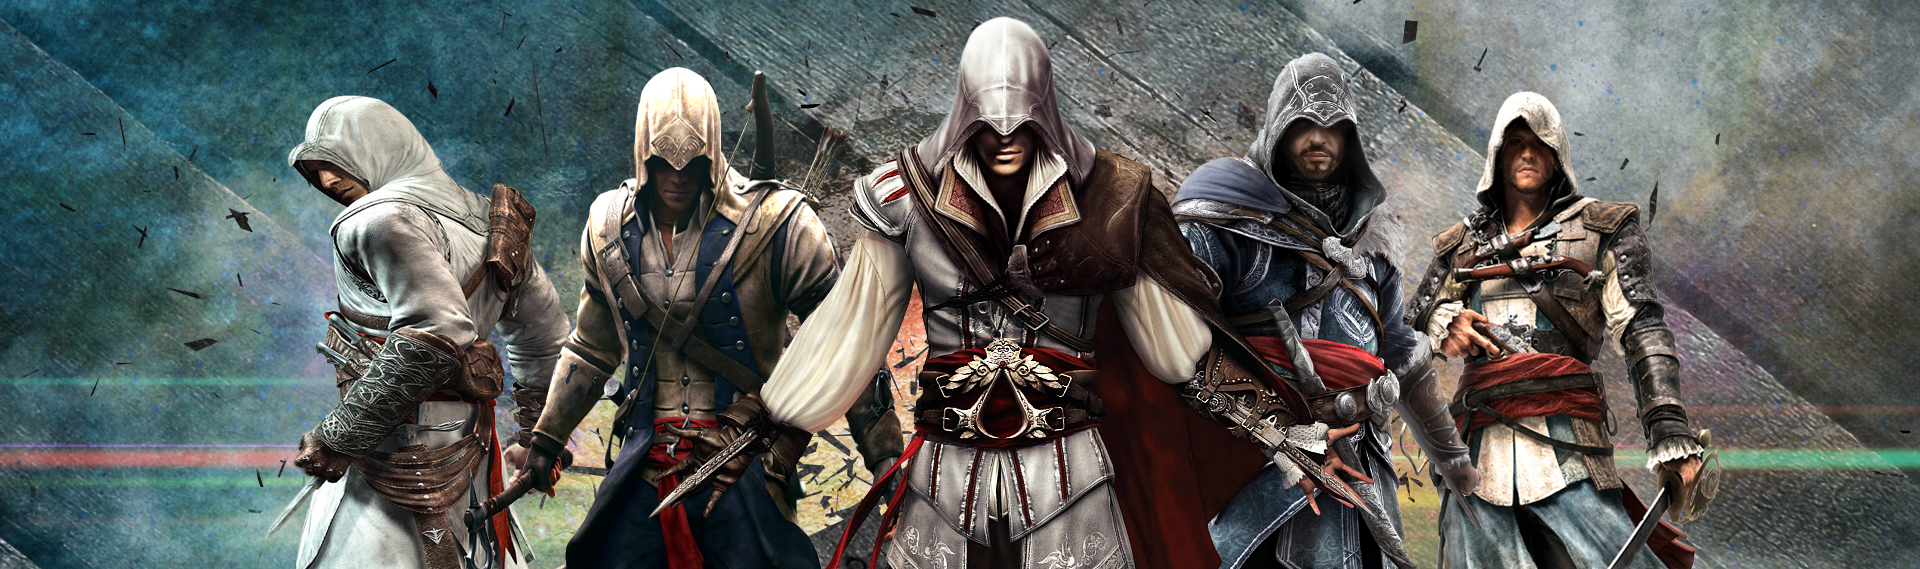 assasins_creed